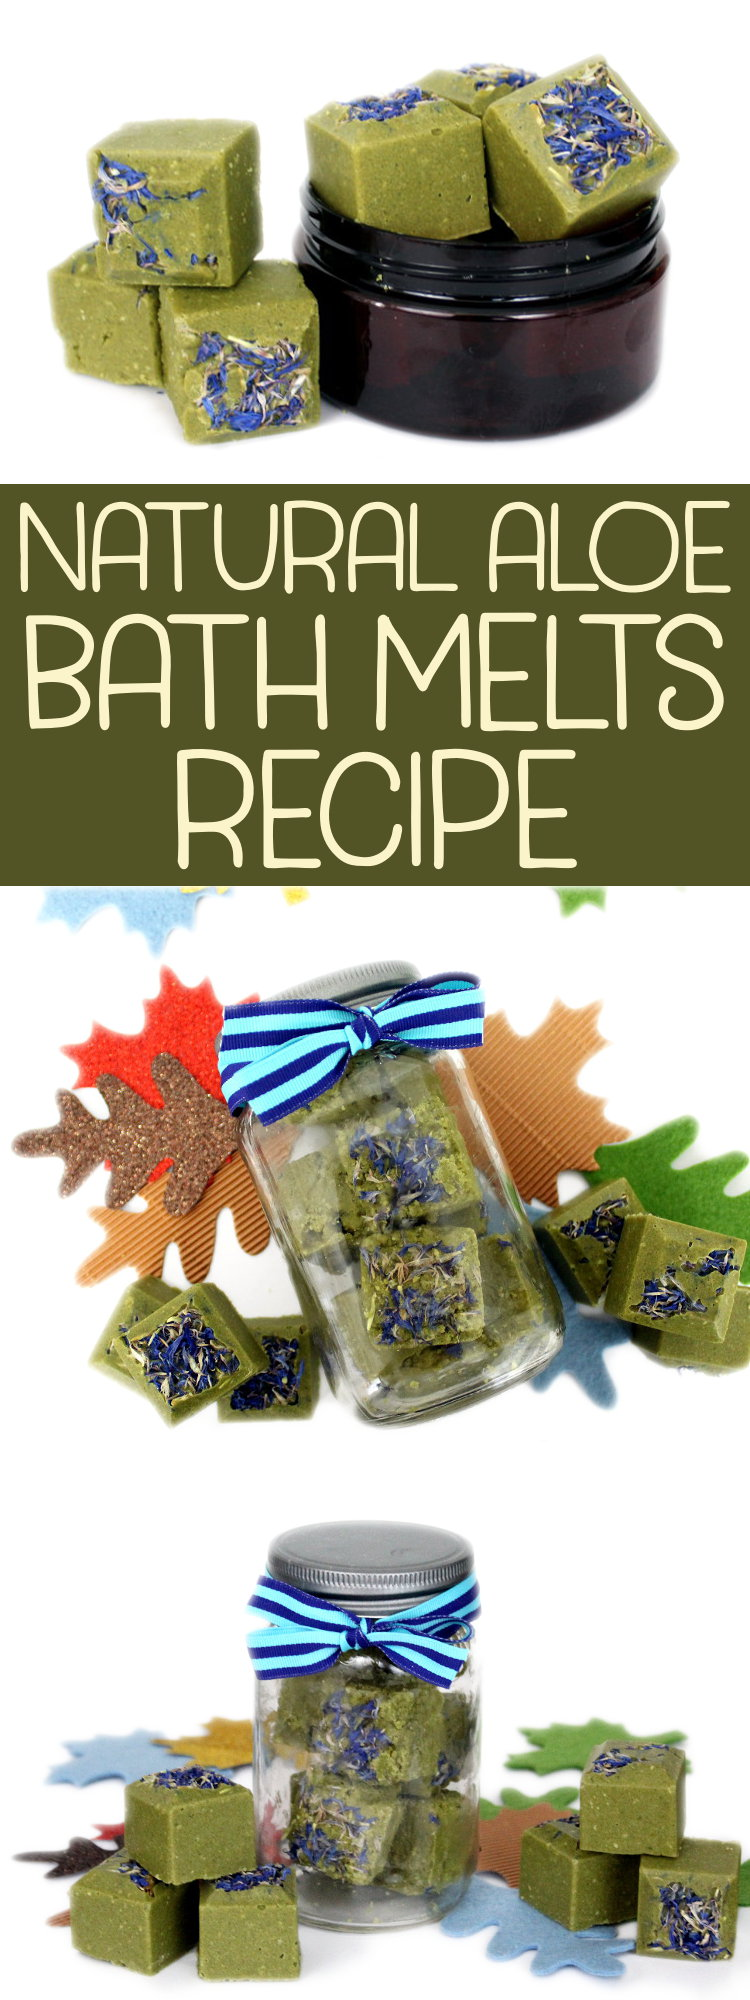 DIY Aloe Vera Bath Melts for Dry Skin! If you suffer from dry skin that's easily irritated by commercial solutions, this aloe vera bath melts recipe is a great natural alternative! Aloe vera, a versatile plant hailed as a magical skin saver, has a long history of use in skin care products and has the ability to promote healing, soothe and moisturize dry skin, fight dandruff and promote hair growth. #AloeVera #diy #BathMelts #crafts #skincare #naturalskincare